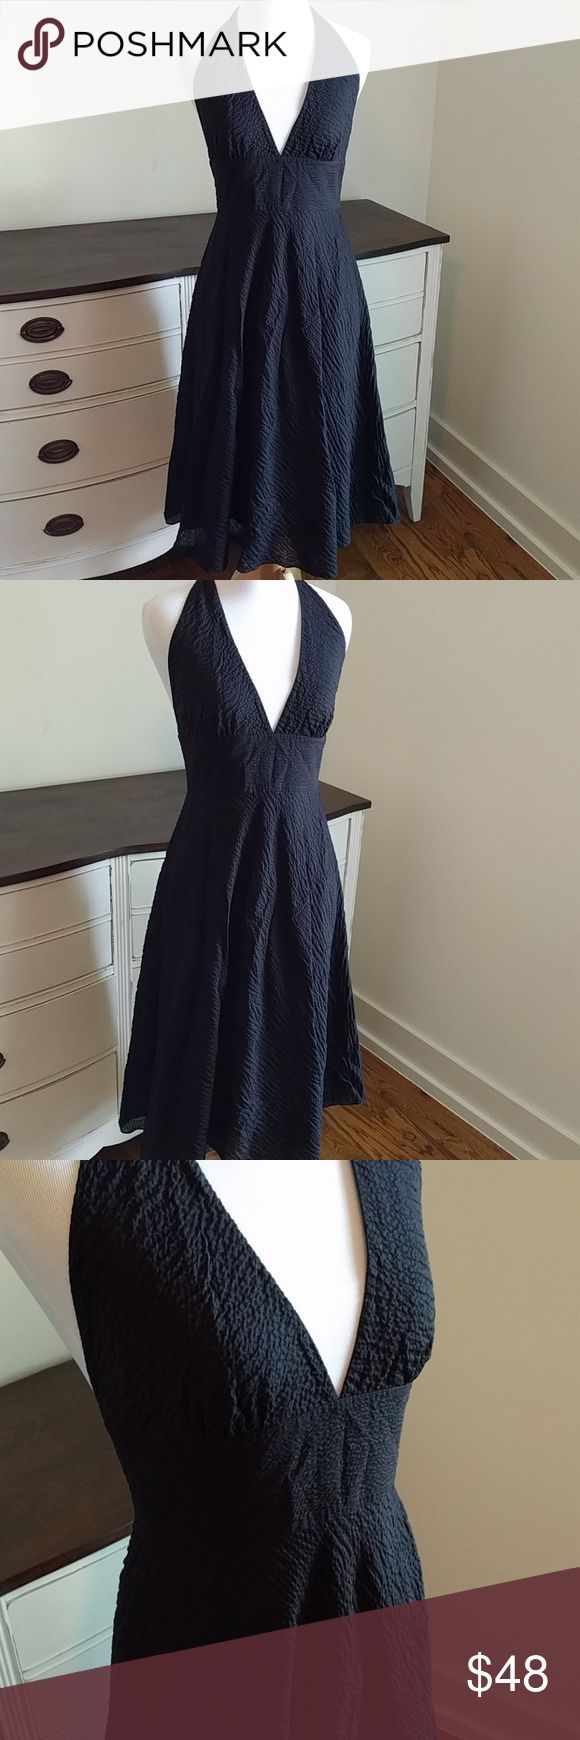 J.Crew embossed black halter dress This gorgeous J.Crew dress was tried on but never worn. Extremely versatile, can be worn sexy or cute with belts, ribbons or ties! Fully lined. Ordered from the catelog not factory or outlet. NWOT j.crew Dresses